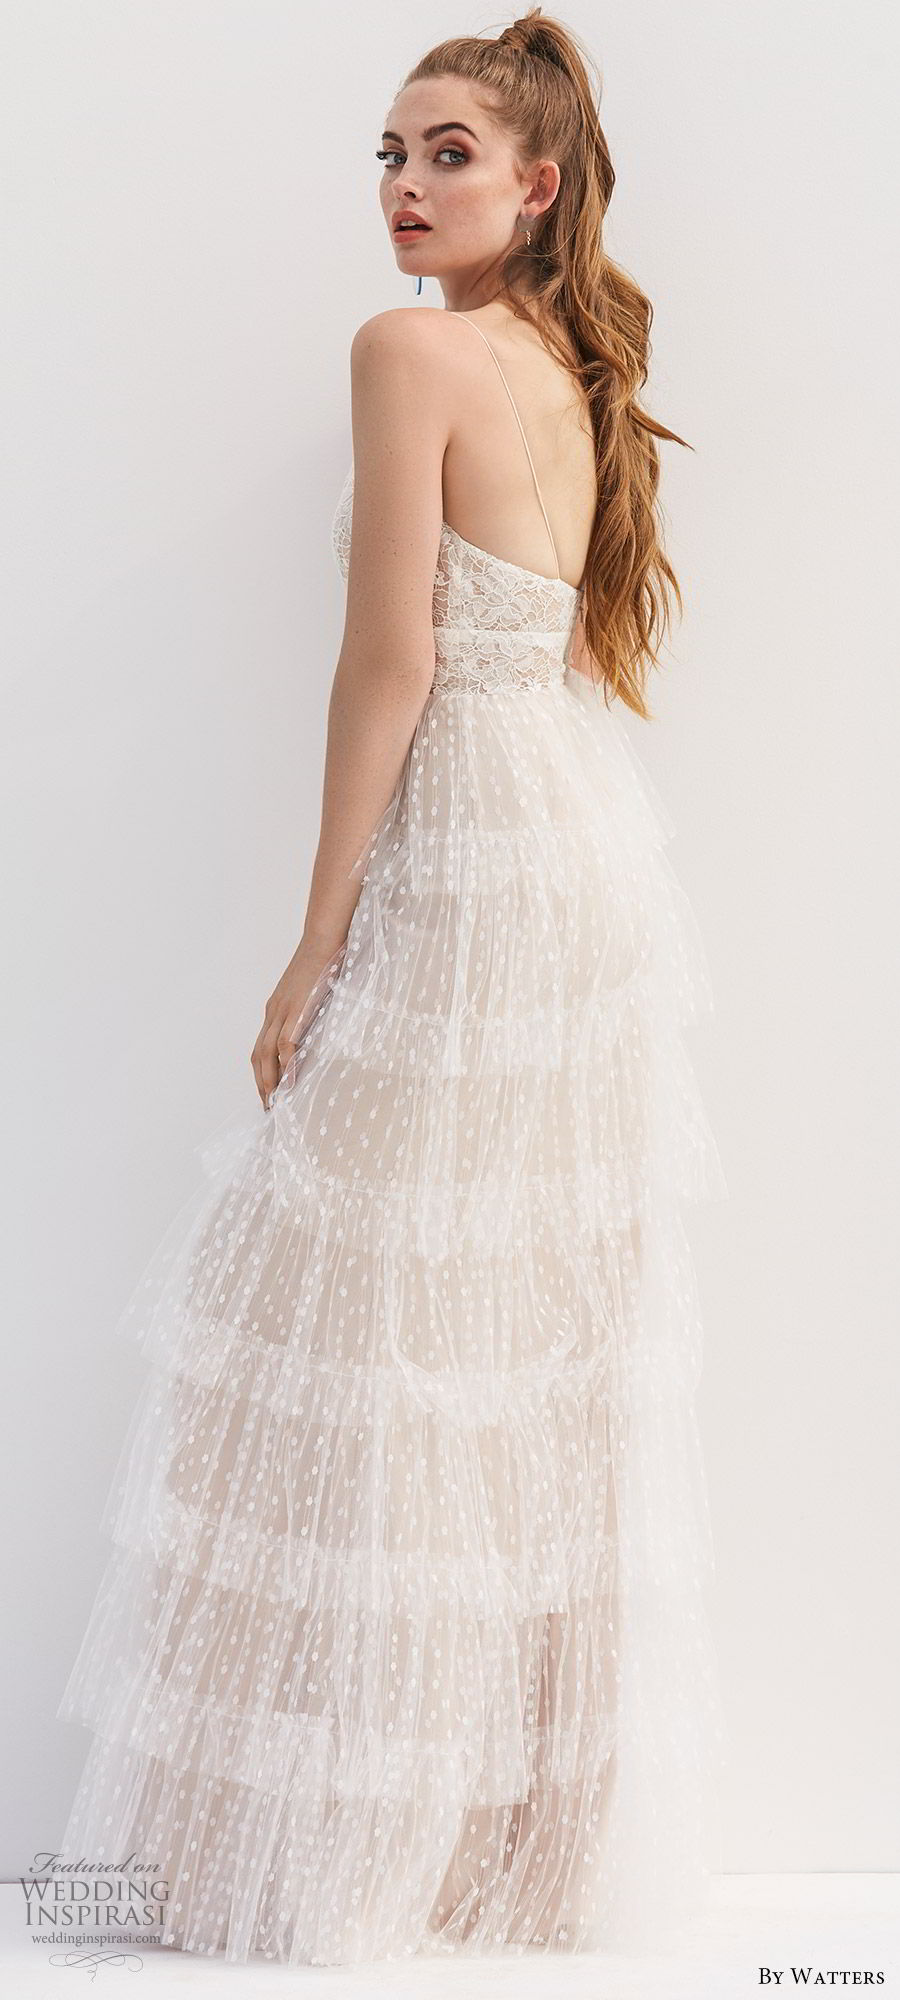 by watters 2020 bridal sleeveless thin straps v neck lace a line ball gown wedding dress (9) romantic boho chic champagne beige bv